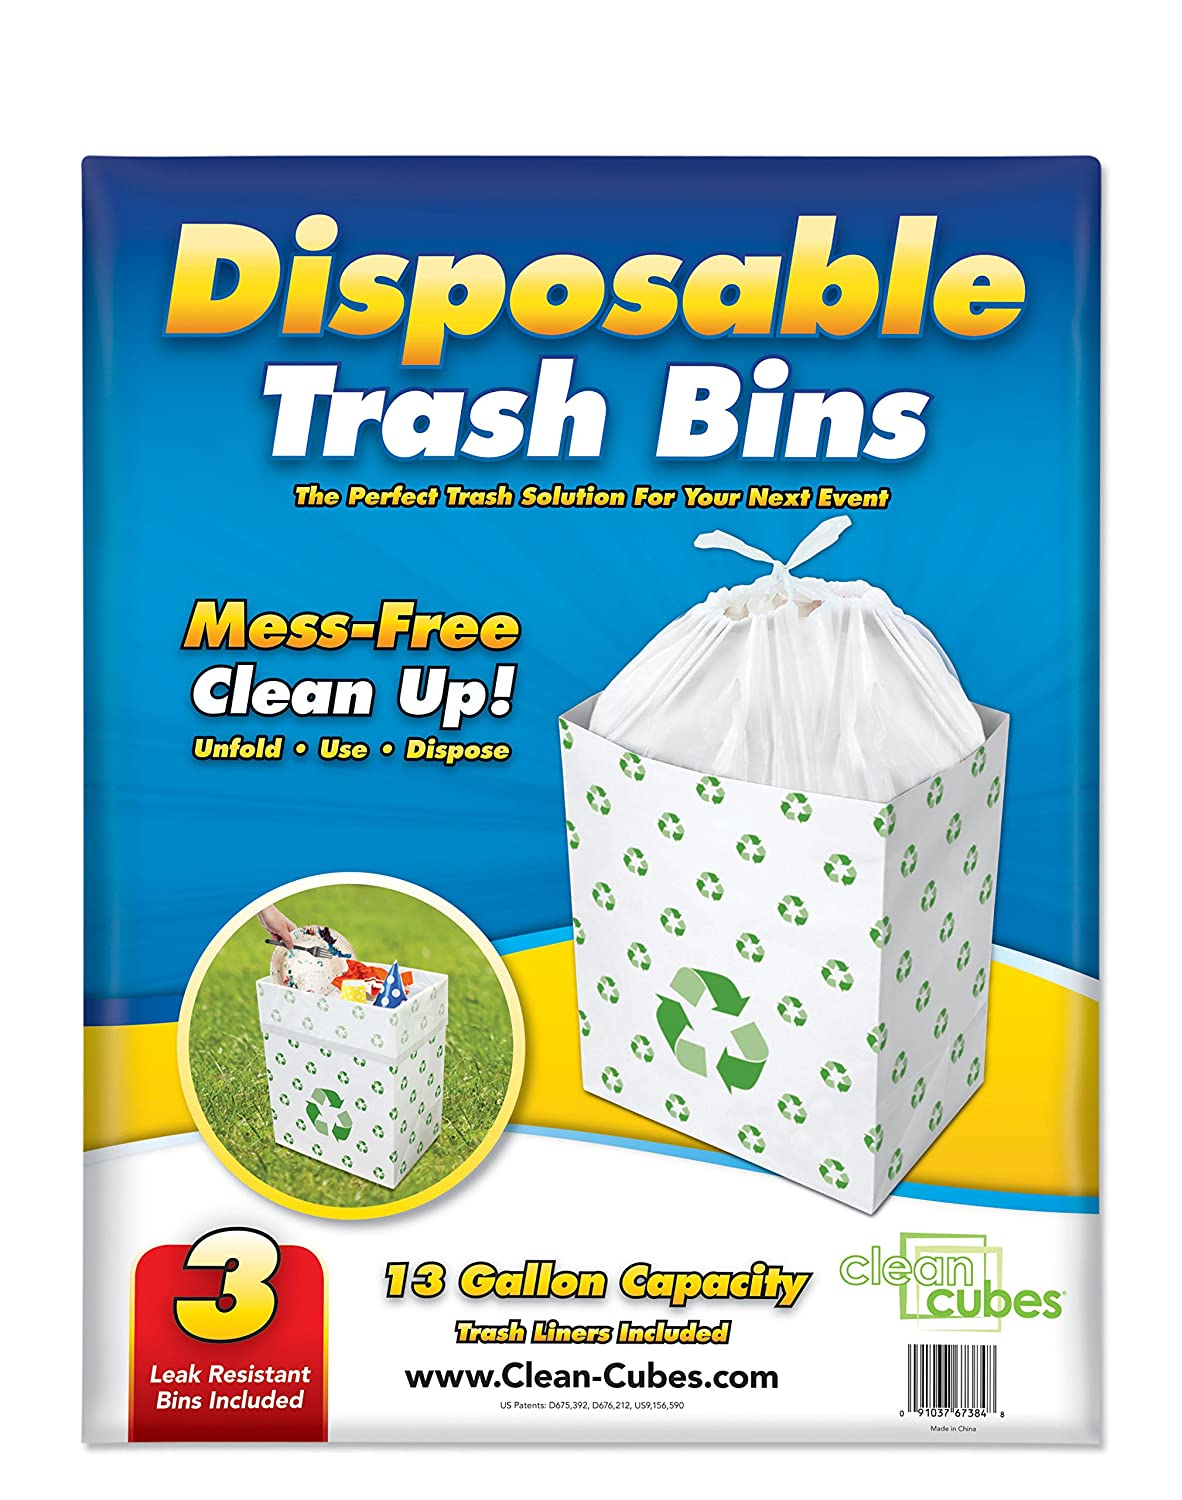 Amazon.com: Clean Cubes 13 Gallon Disposable Trash Cans & Recycling ...